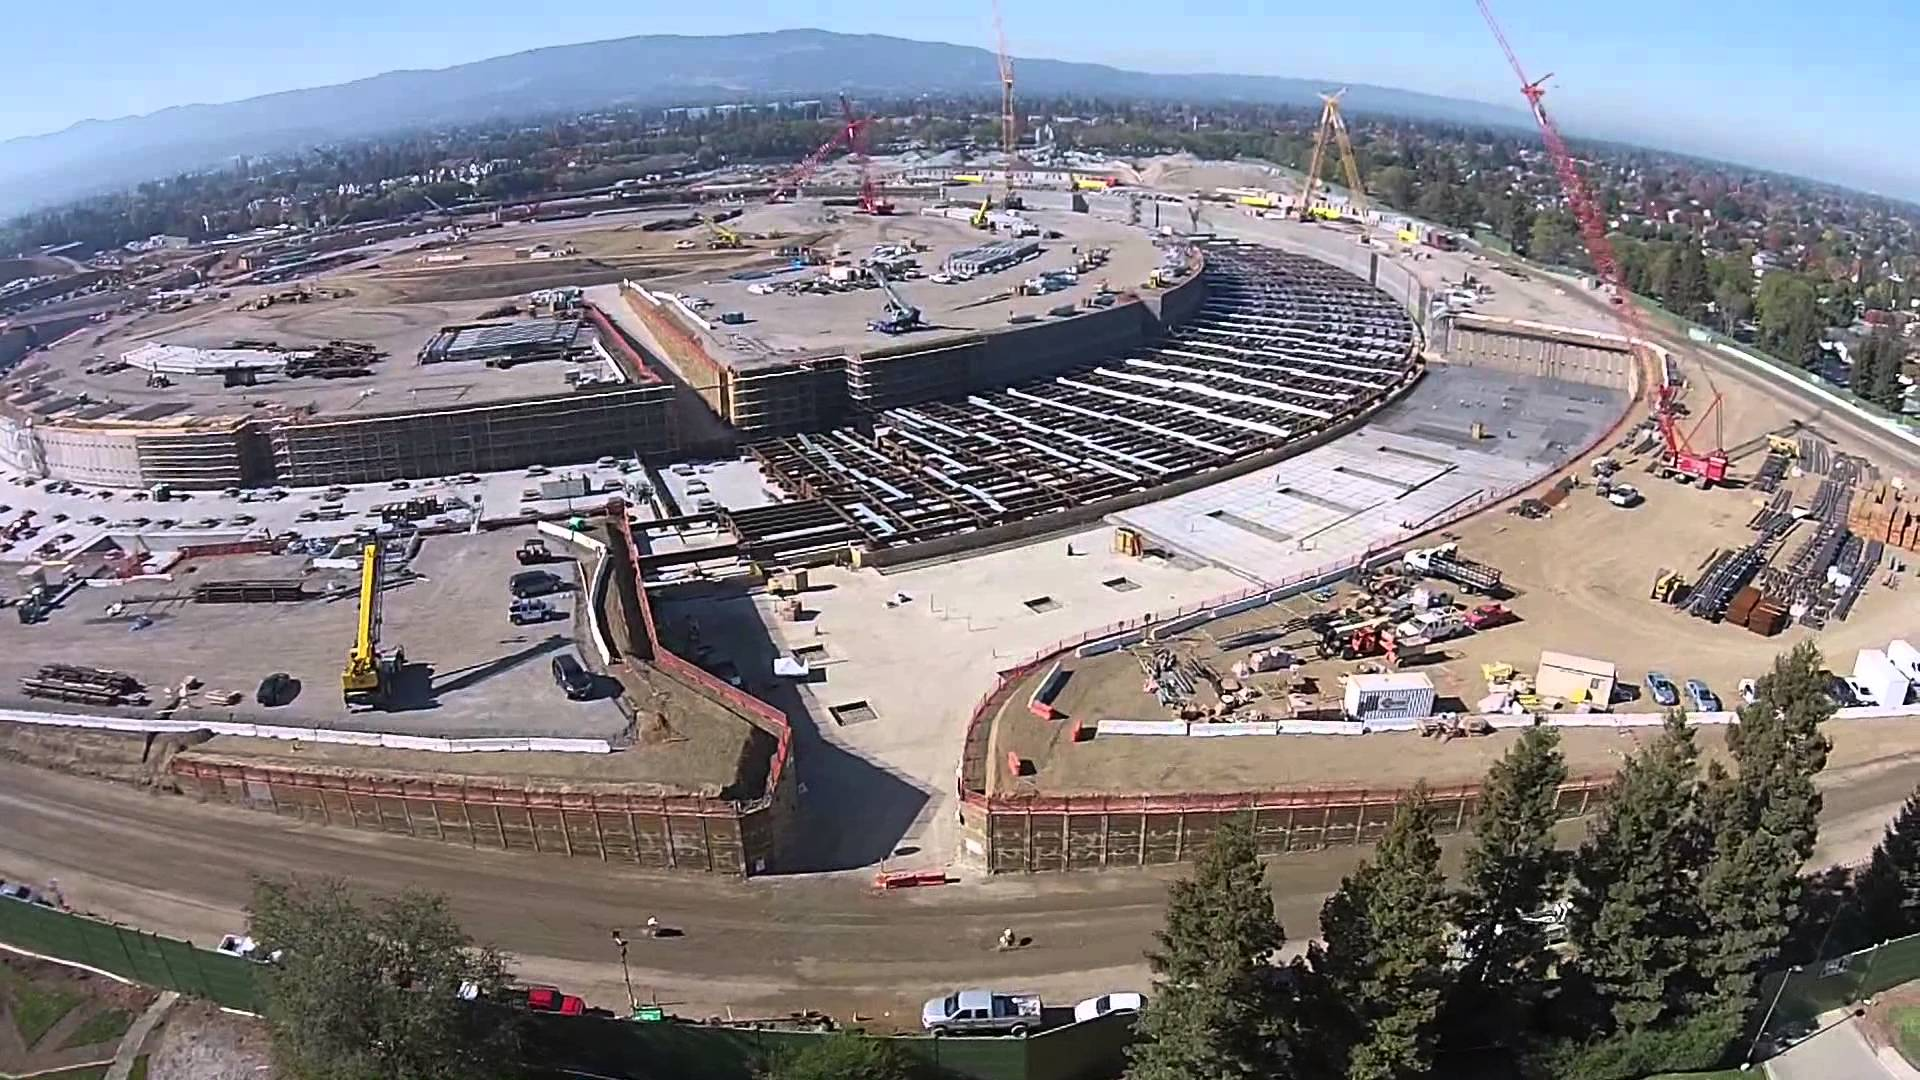 New Drone Flight Video Shows Apple Campus 2 Construction